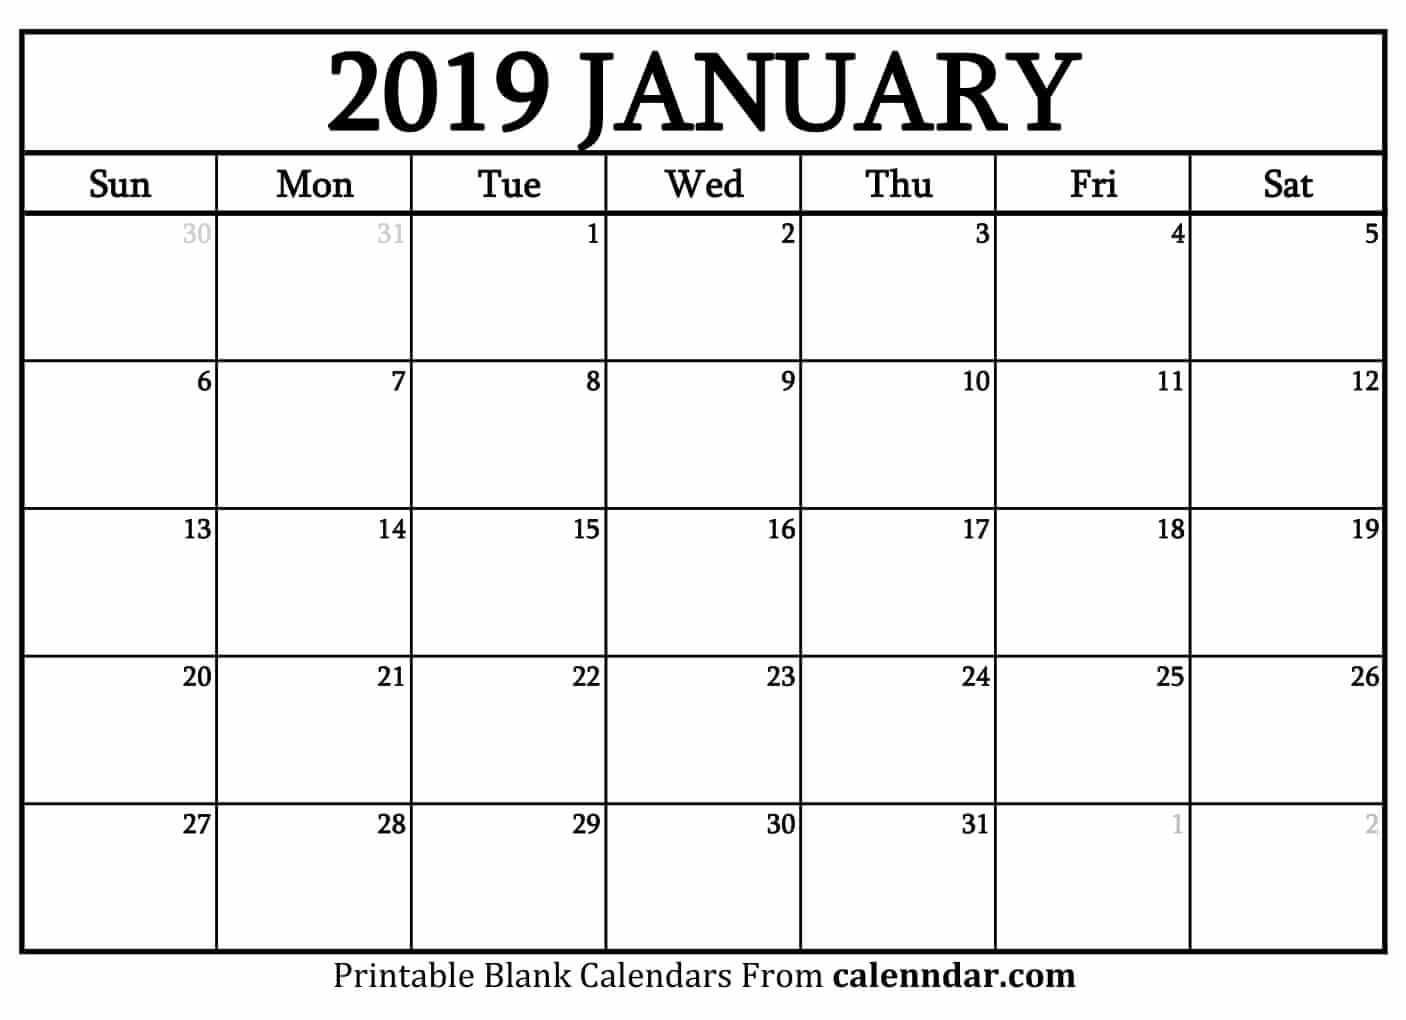 Blank January 2019 Calendar Templates - Calenndar throughout Picture Of A January Calender